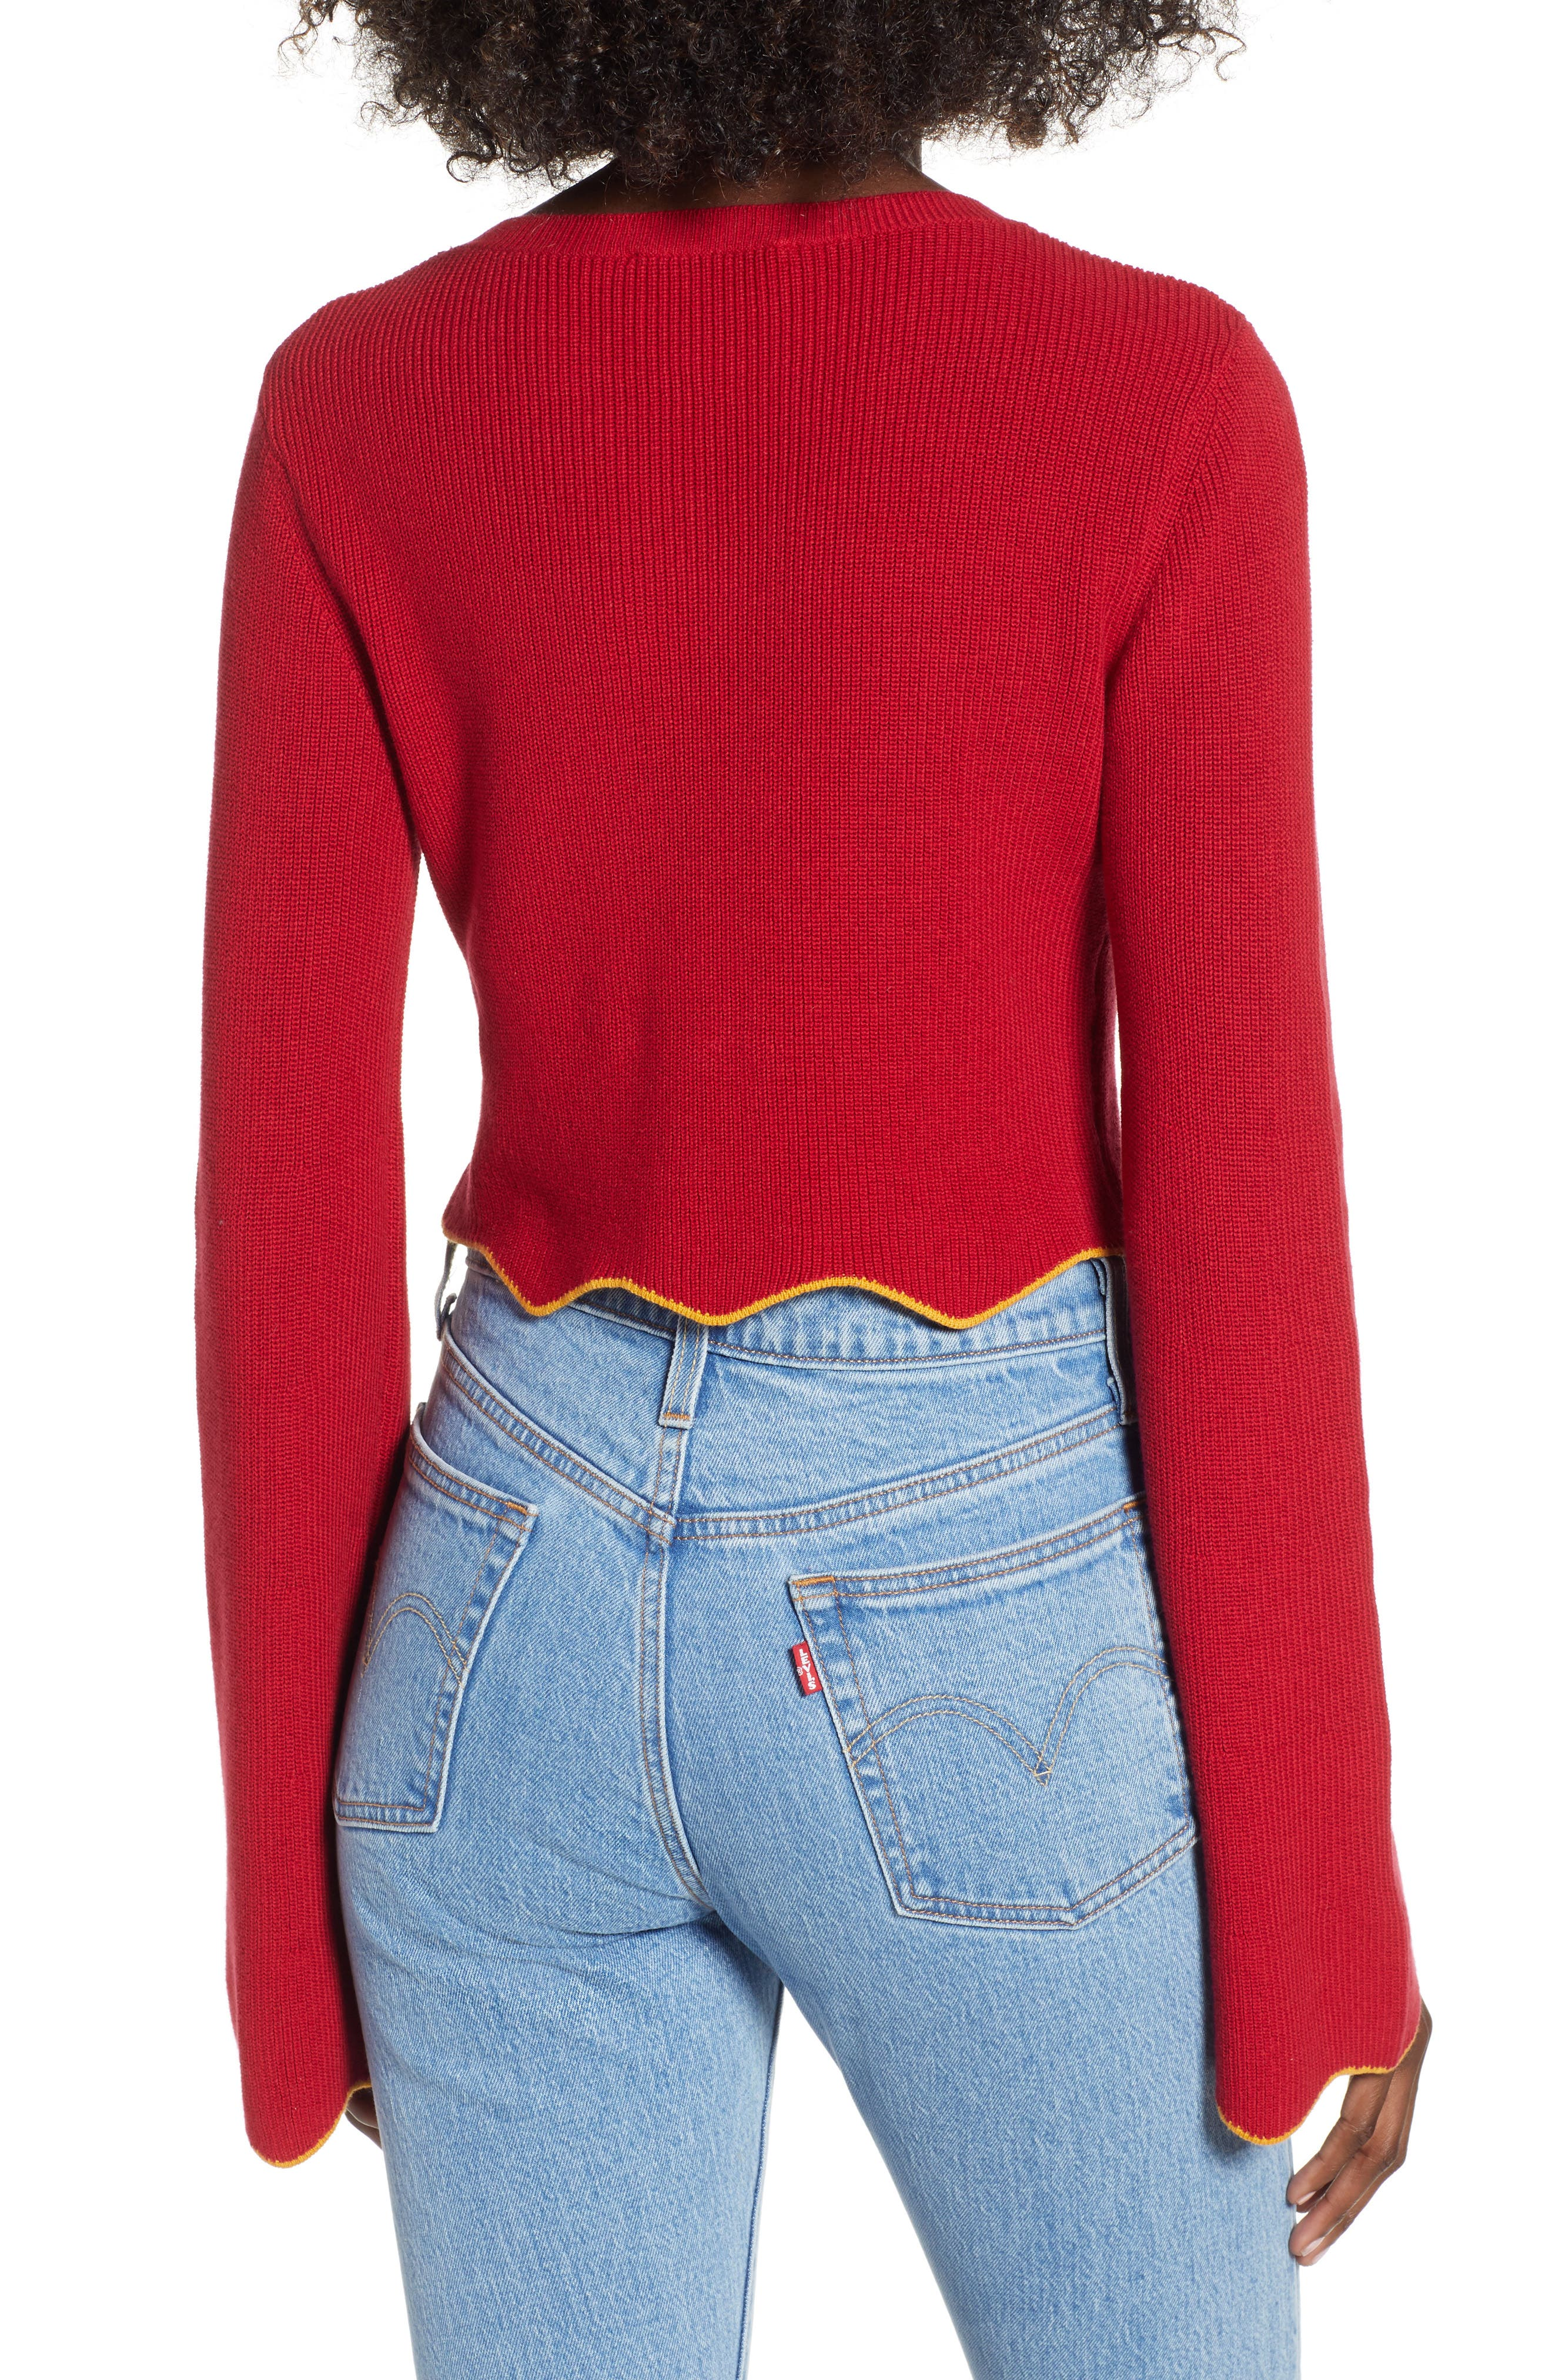 THE FIFTH LABEL,                             Headquarters Knit Crop Top,                             Alternate thumbnail 2, color,                             600